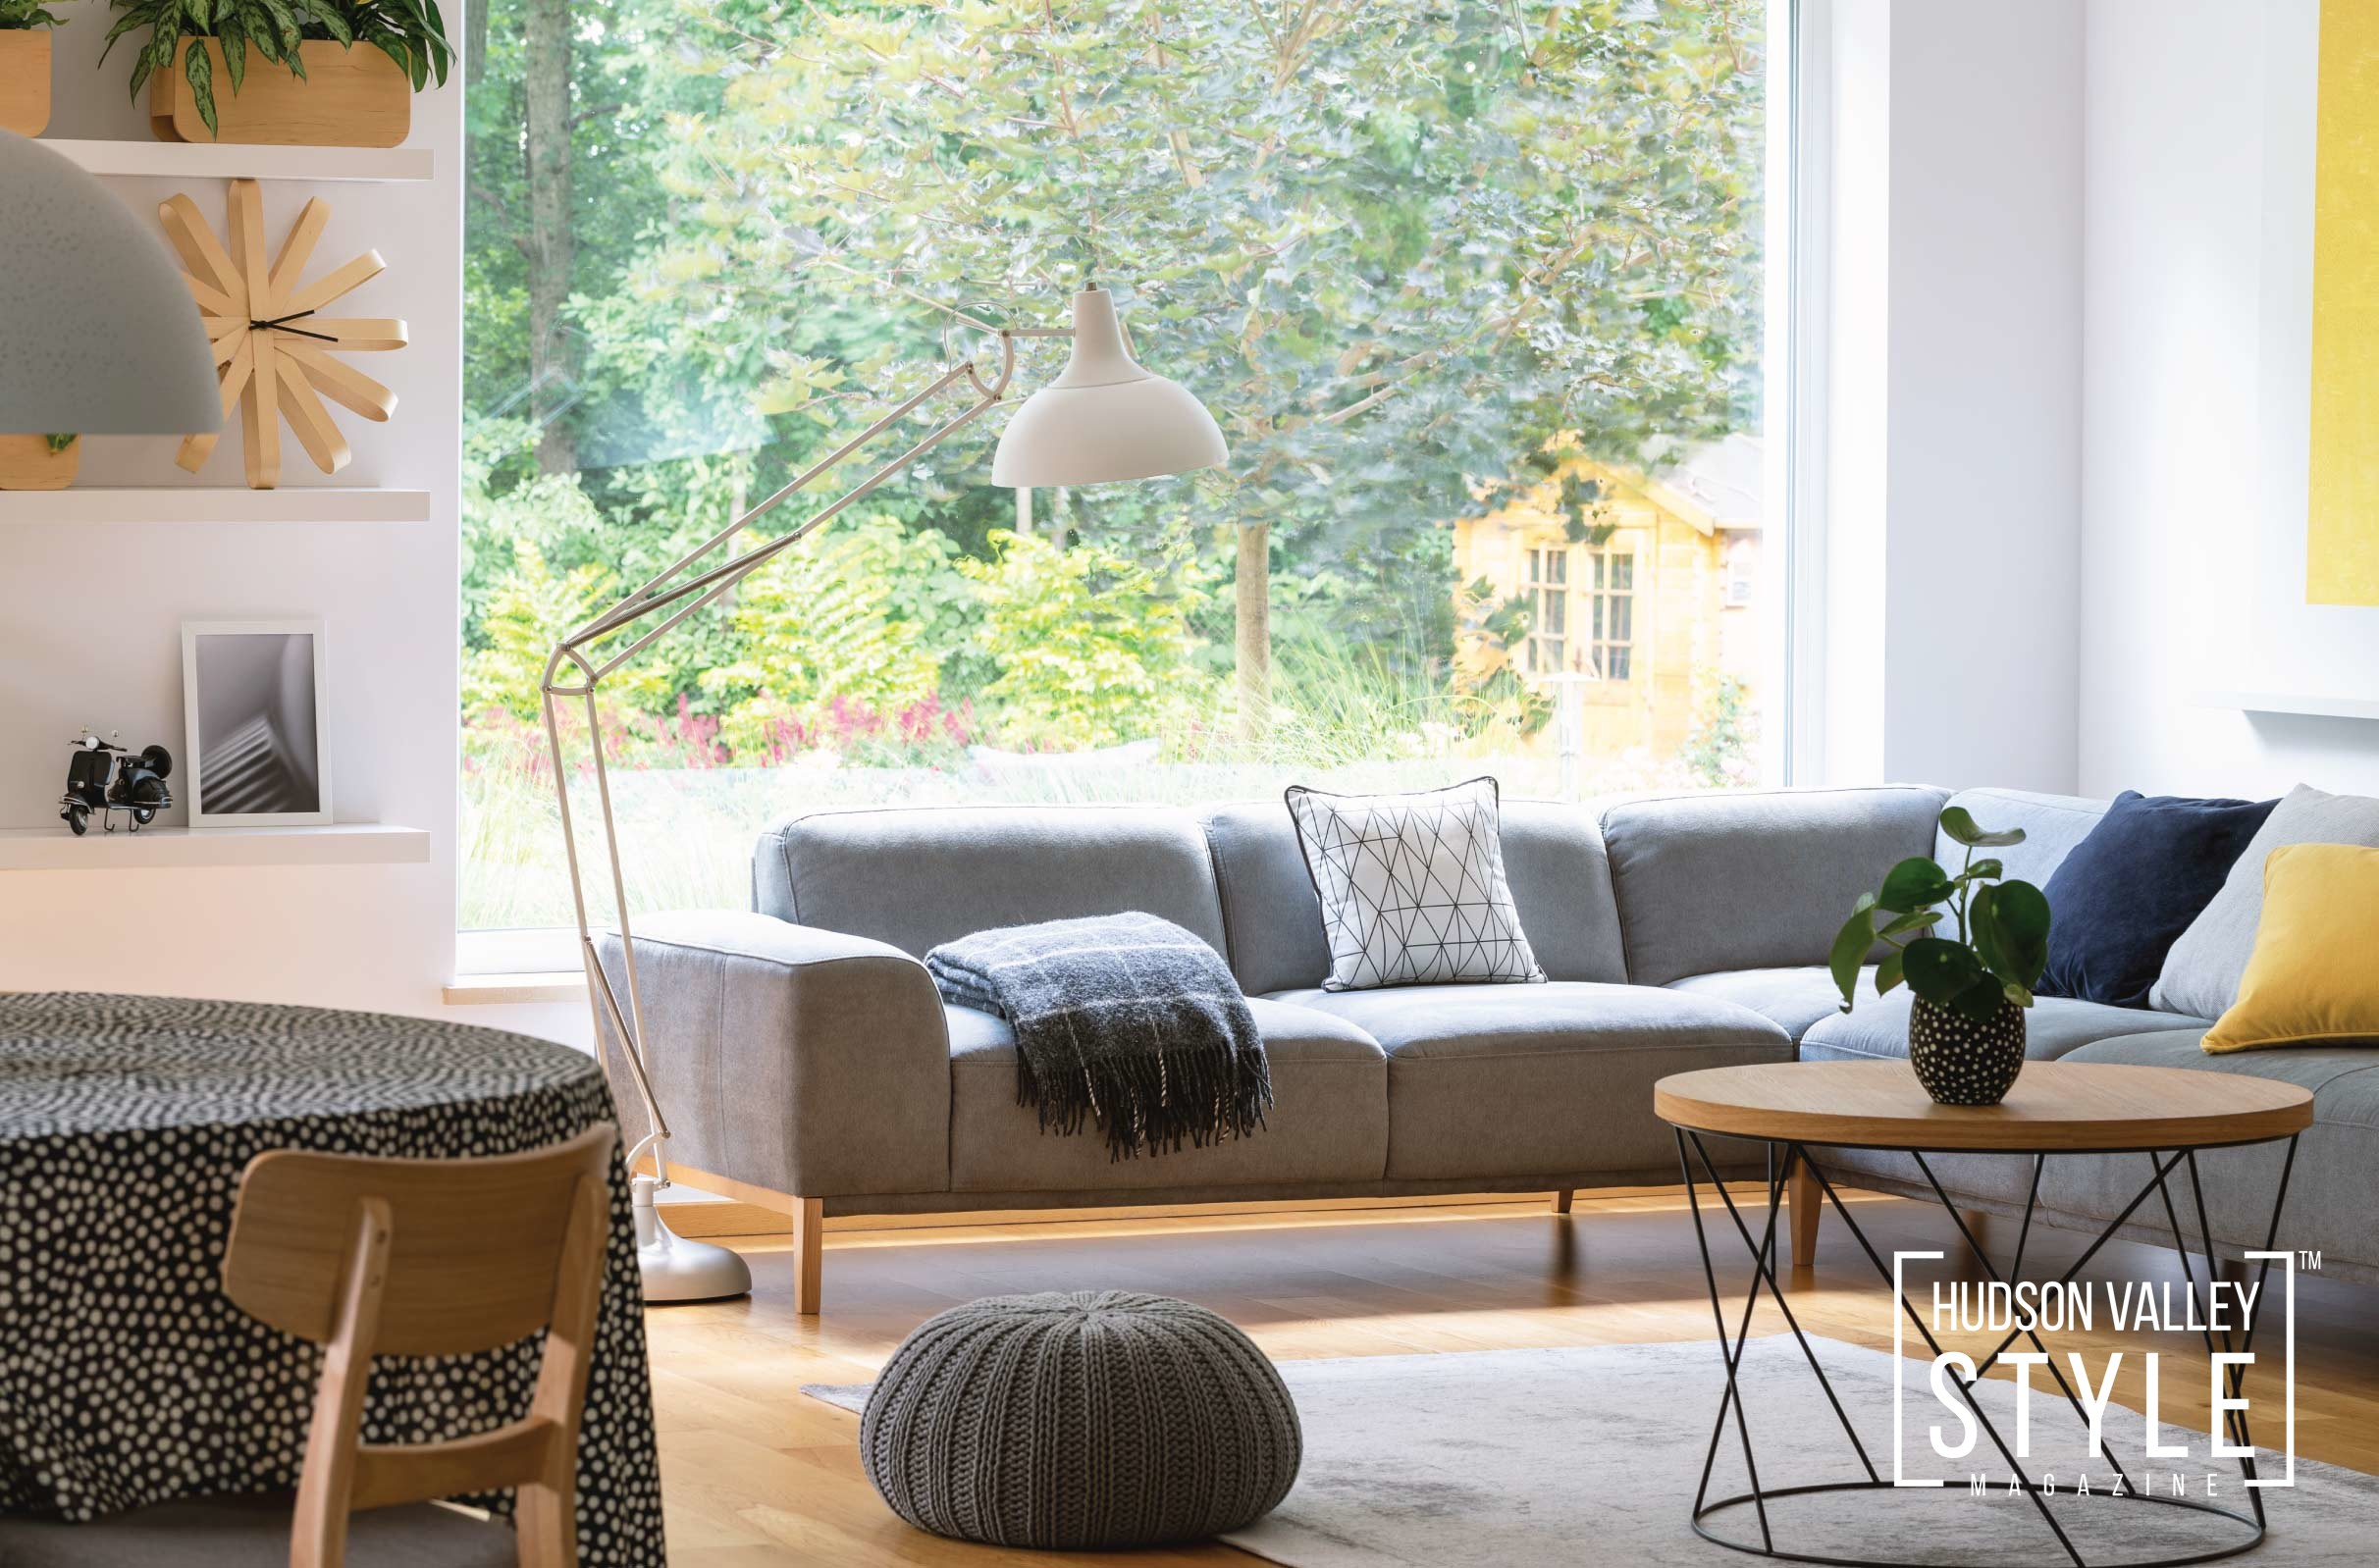 Staging a House for Sale: 10 Steps to Home Staging Success by Designer/Realtor Maxwell Alexander